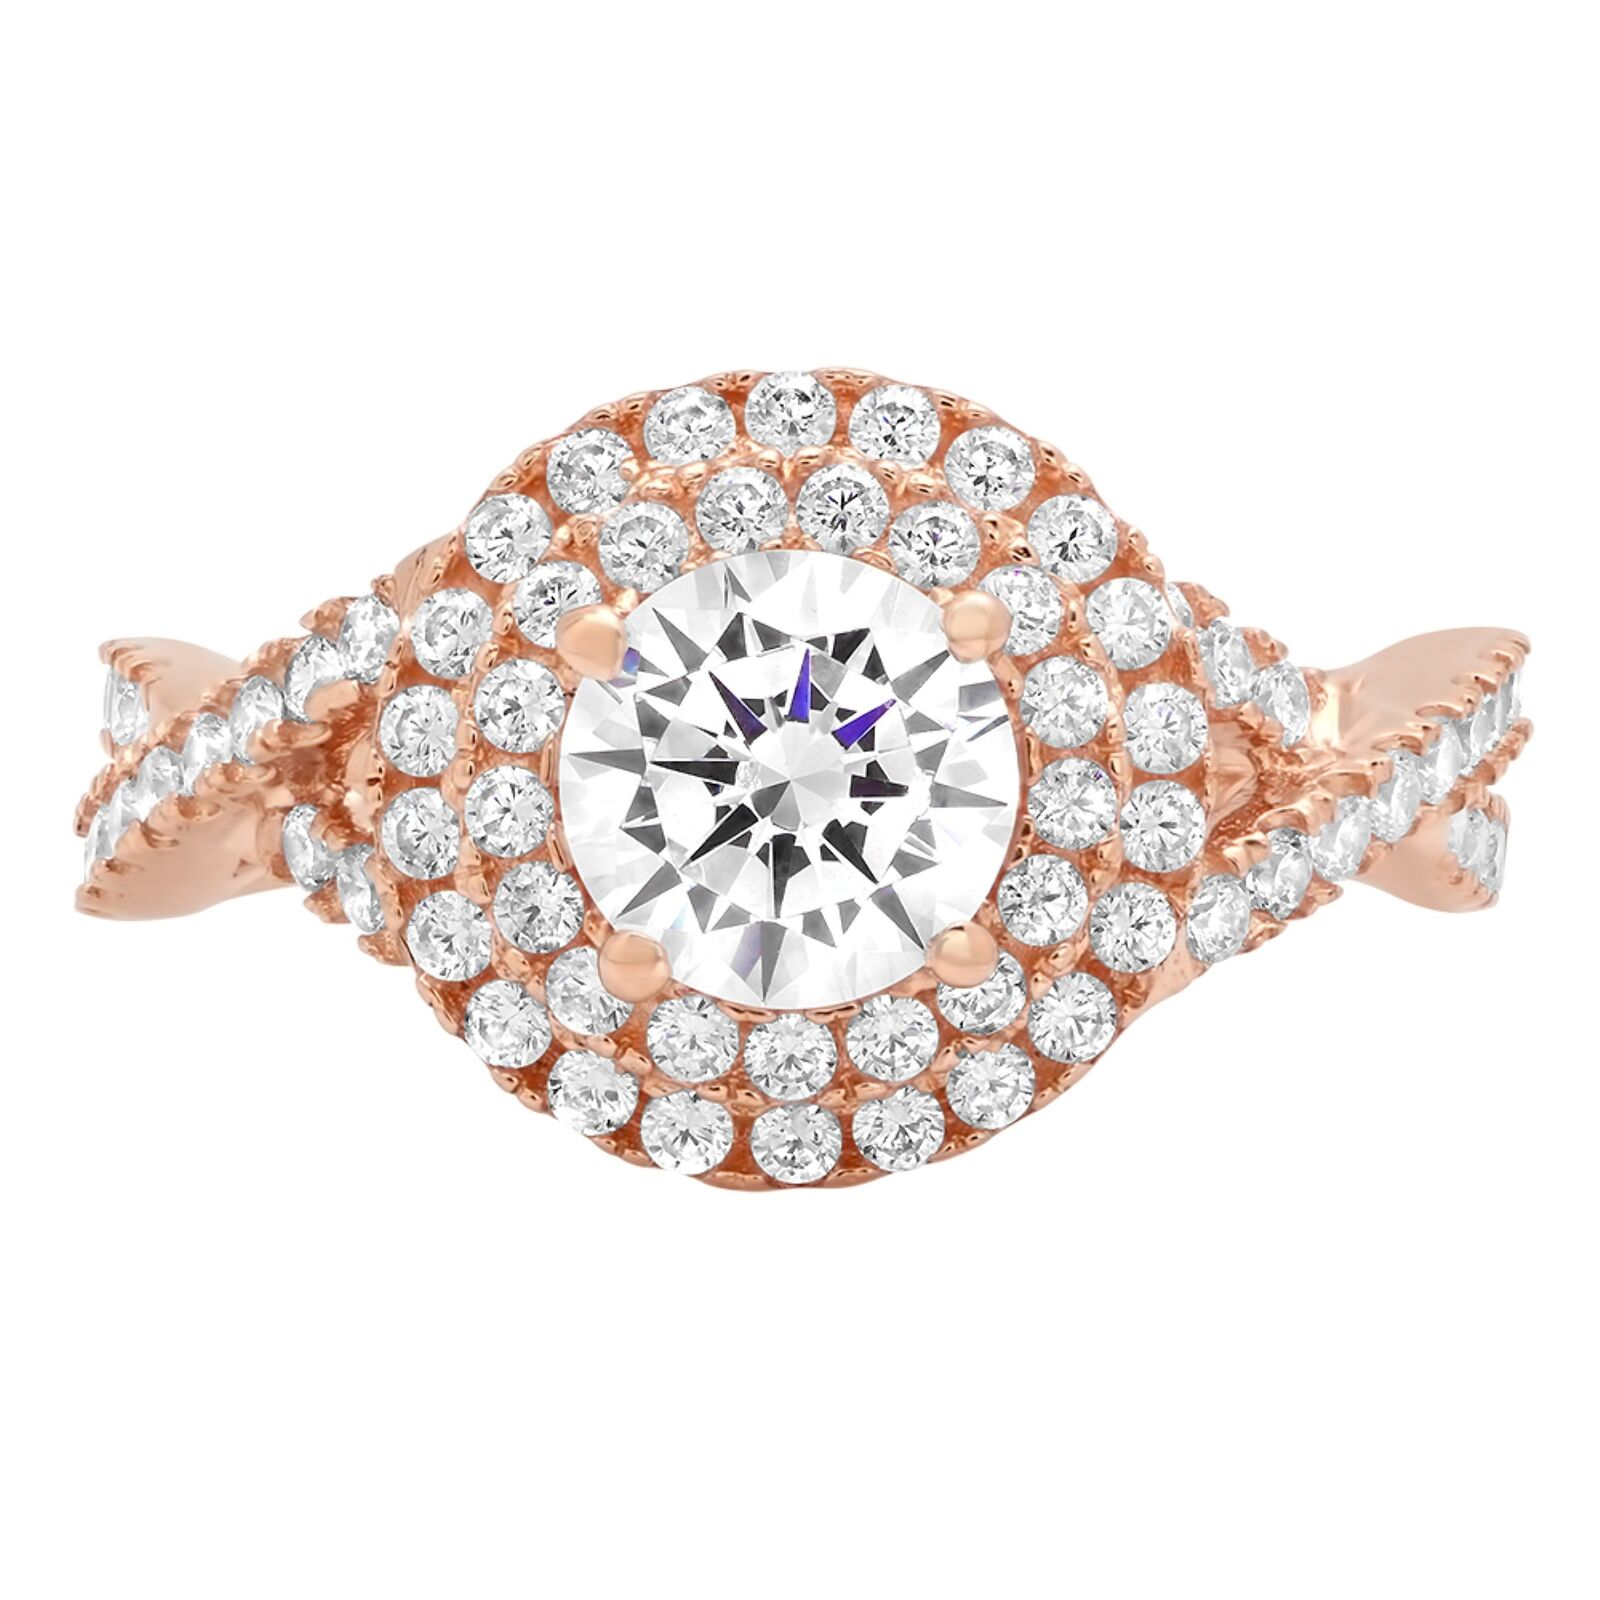 1.6ct Round Cut Solitaire Halo Promise Bridal Engagement Ring 14k pink gold